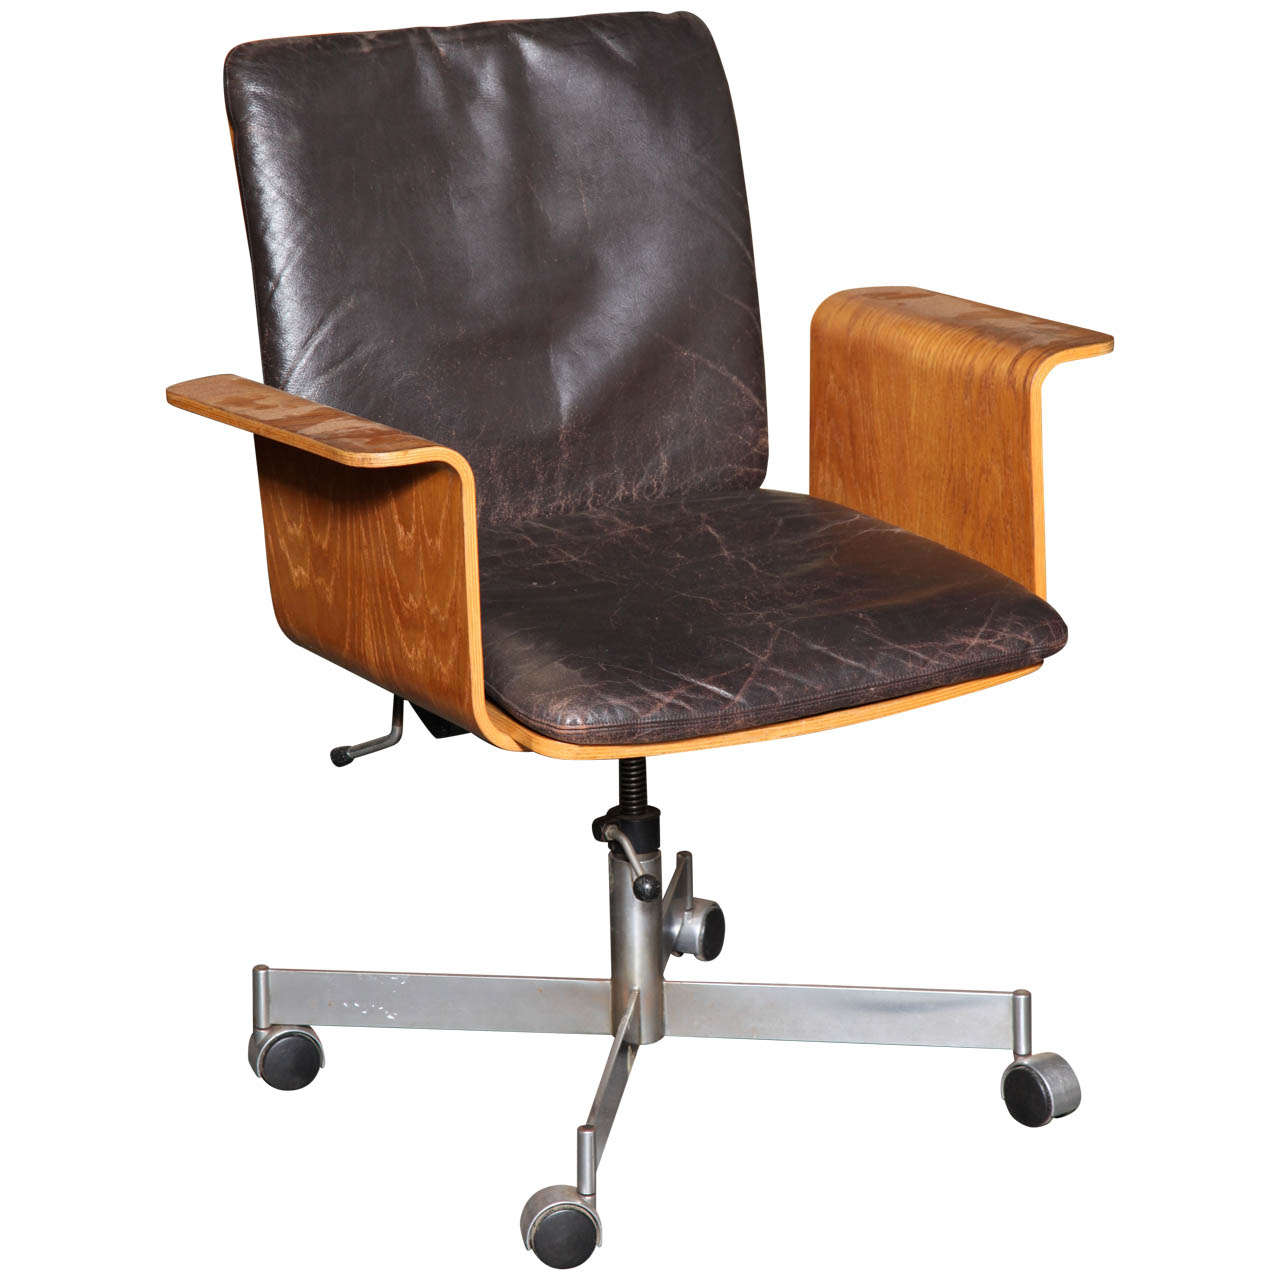 Teak Desk Office Chair With Leather Upholstery By Kevi 1